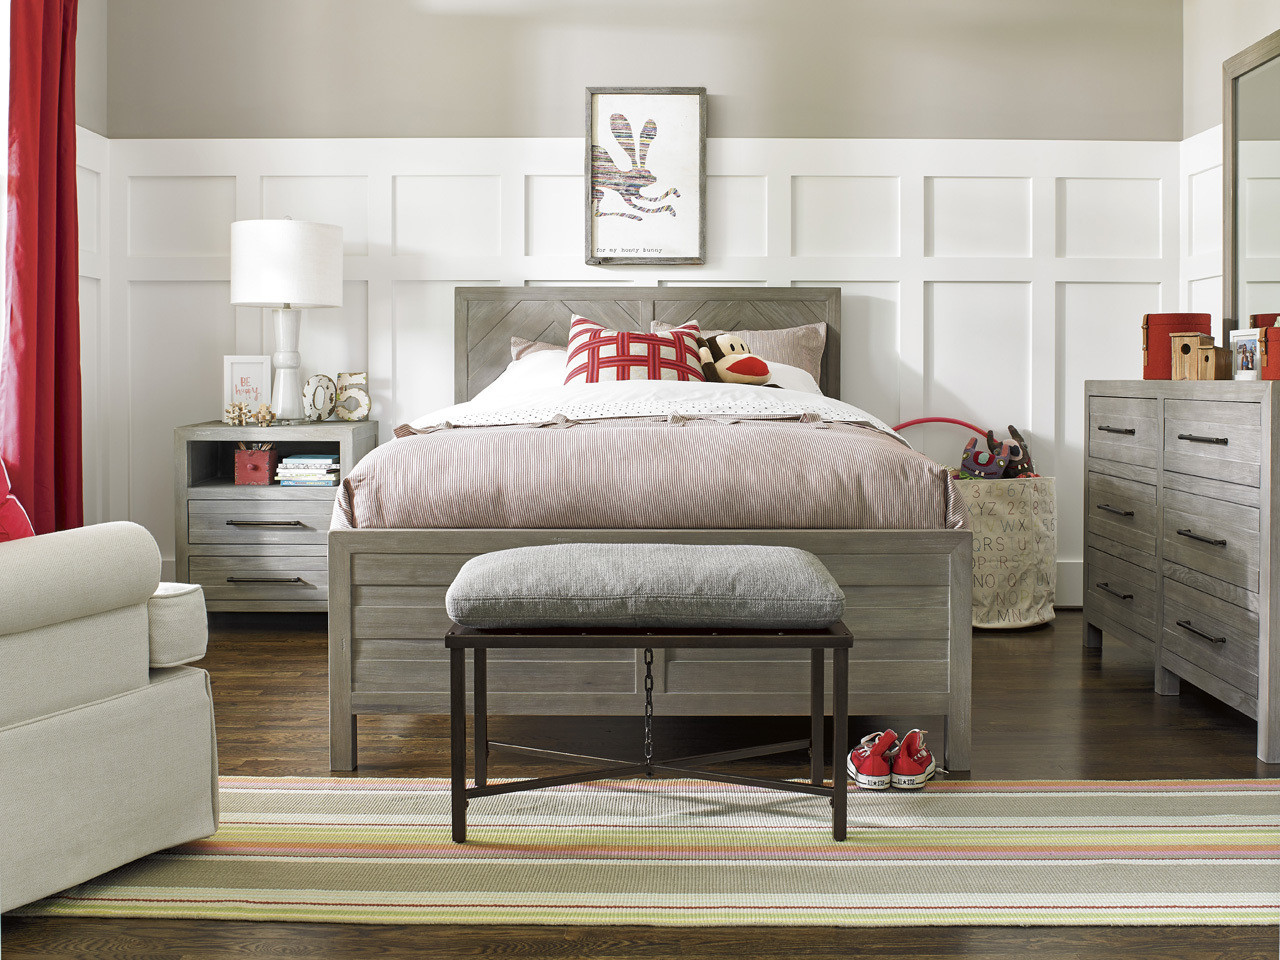 Boys Bedroom Furniture Collections - Bedroom Source